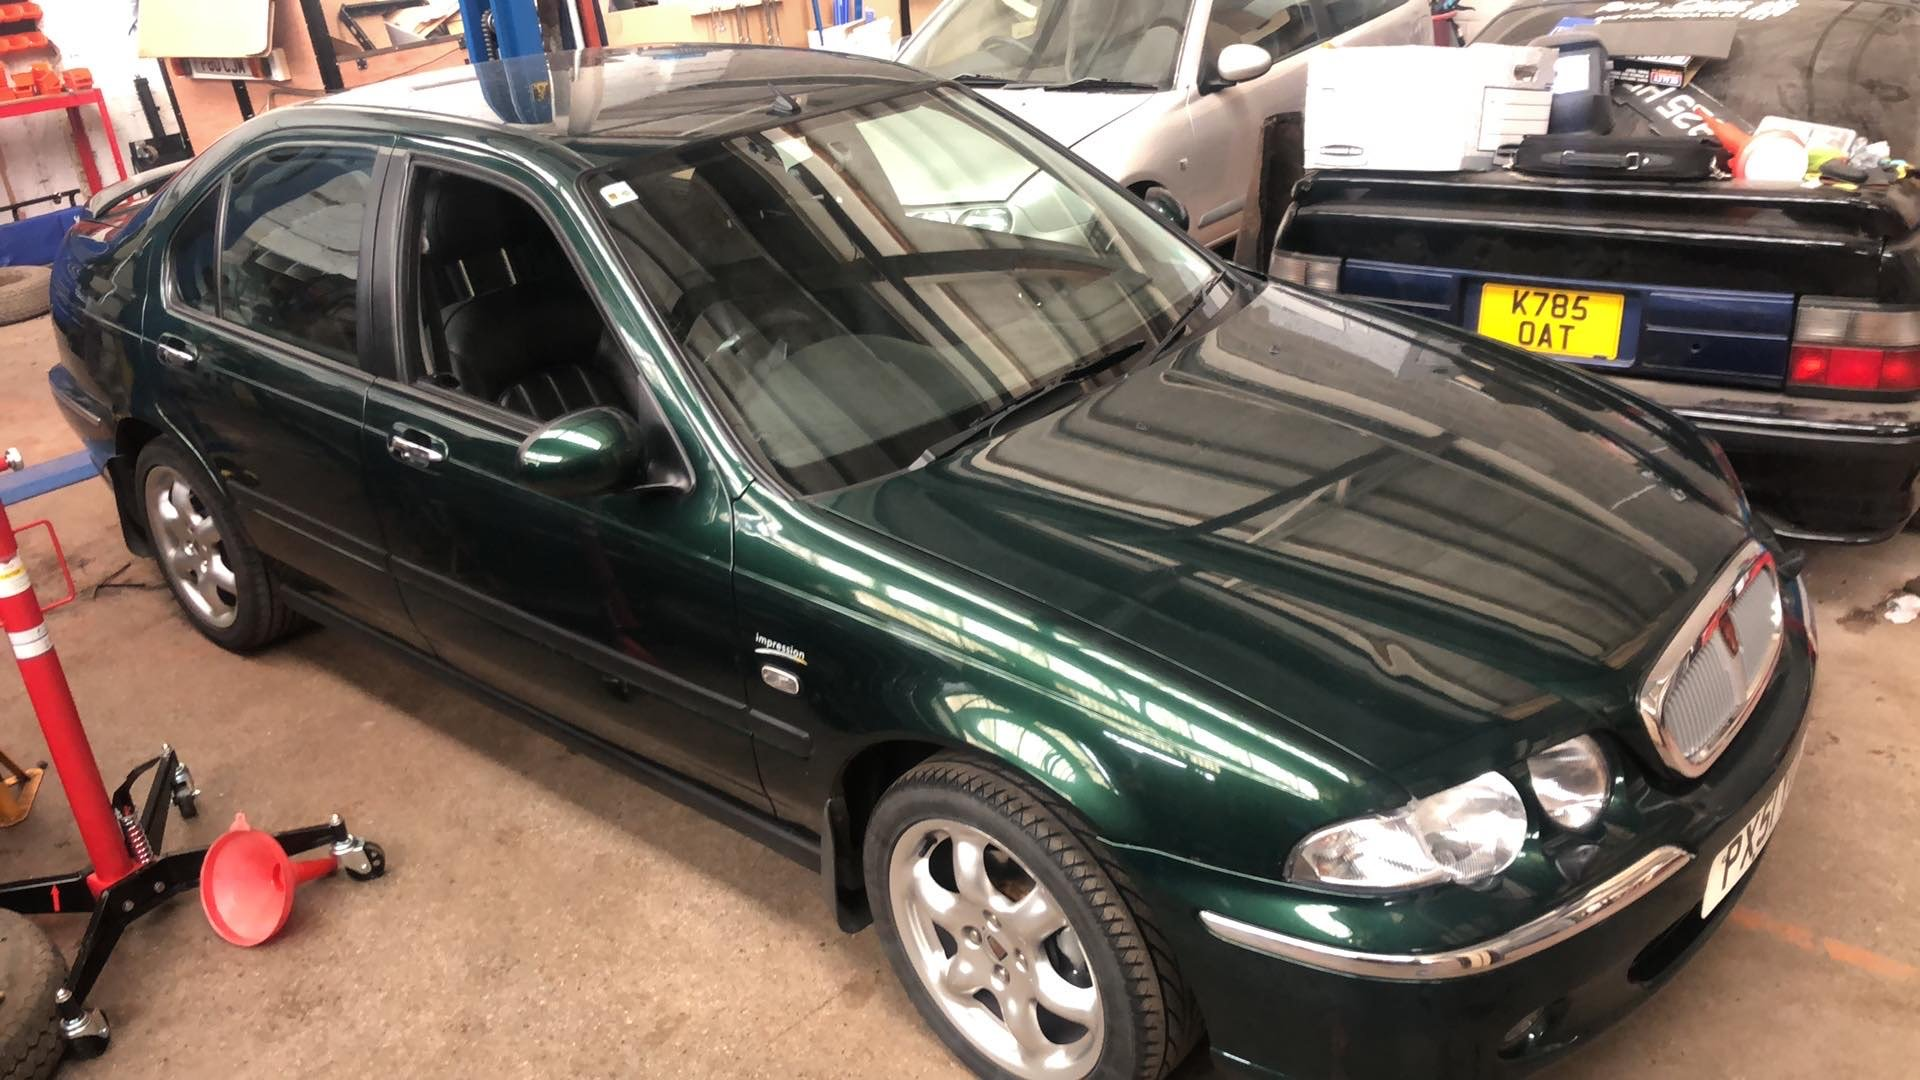 2001 Rover 45 Connoisseur 49k For Sale (picture 1 of 6)